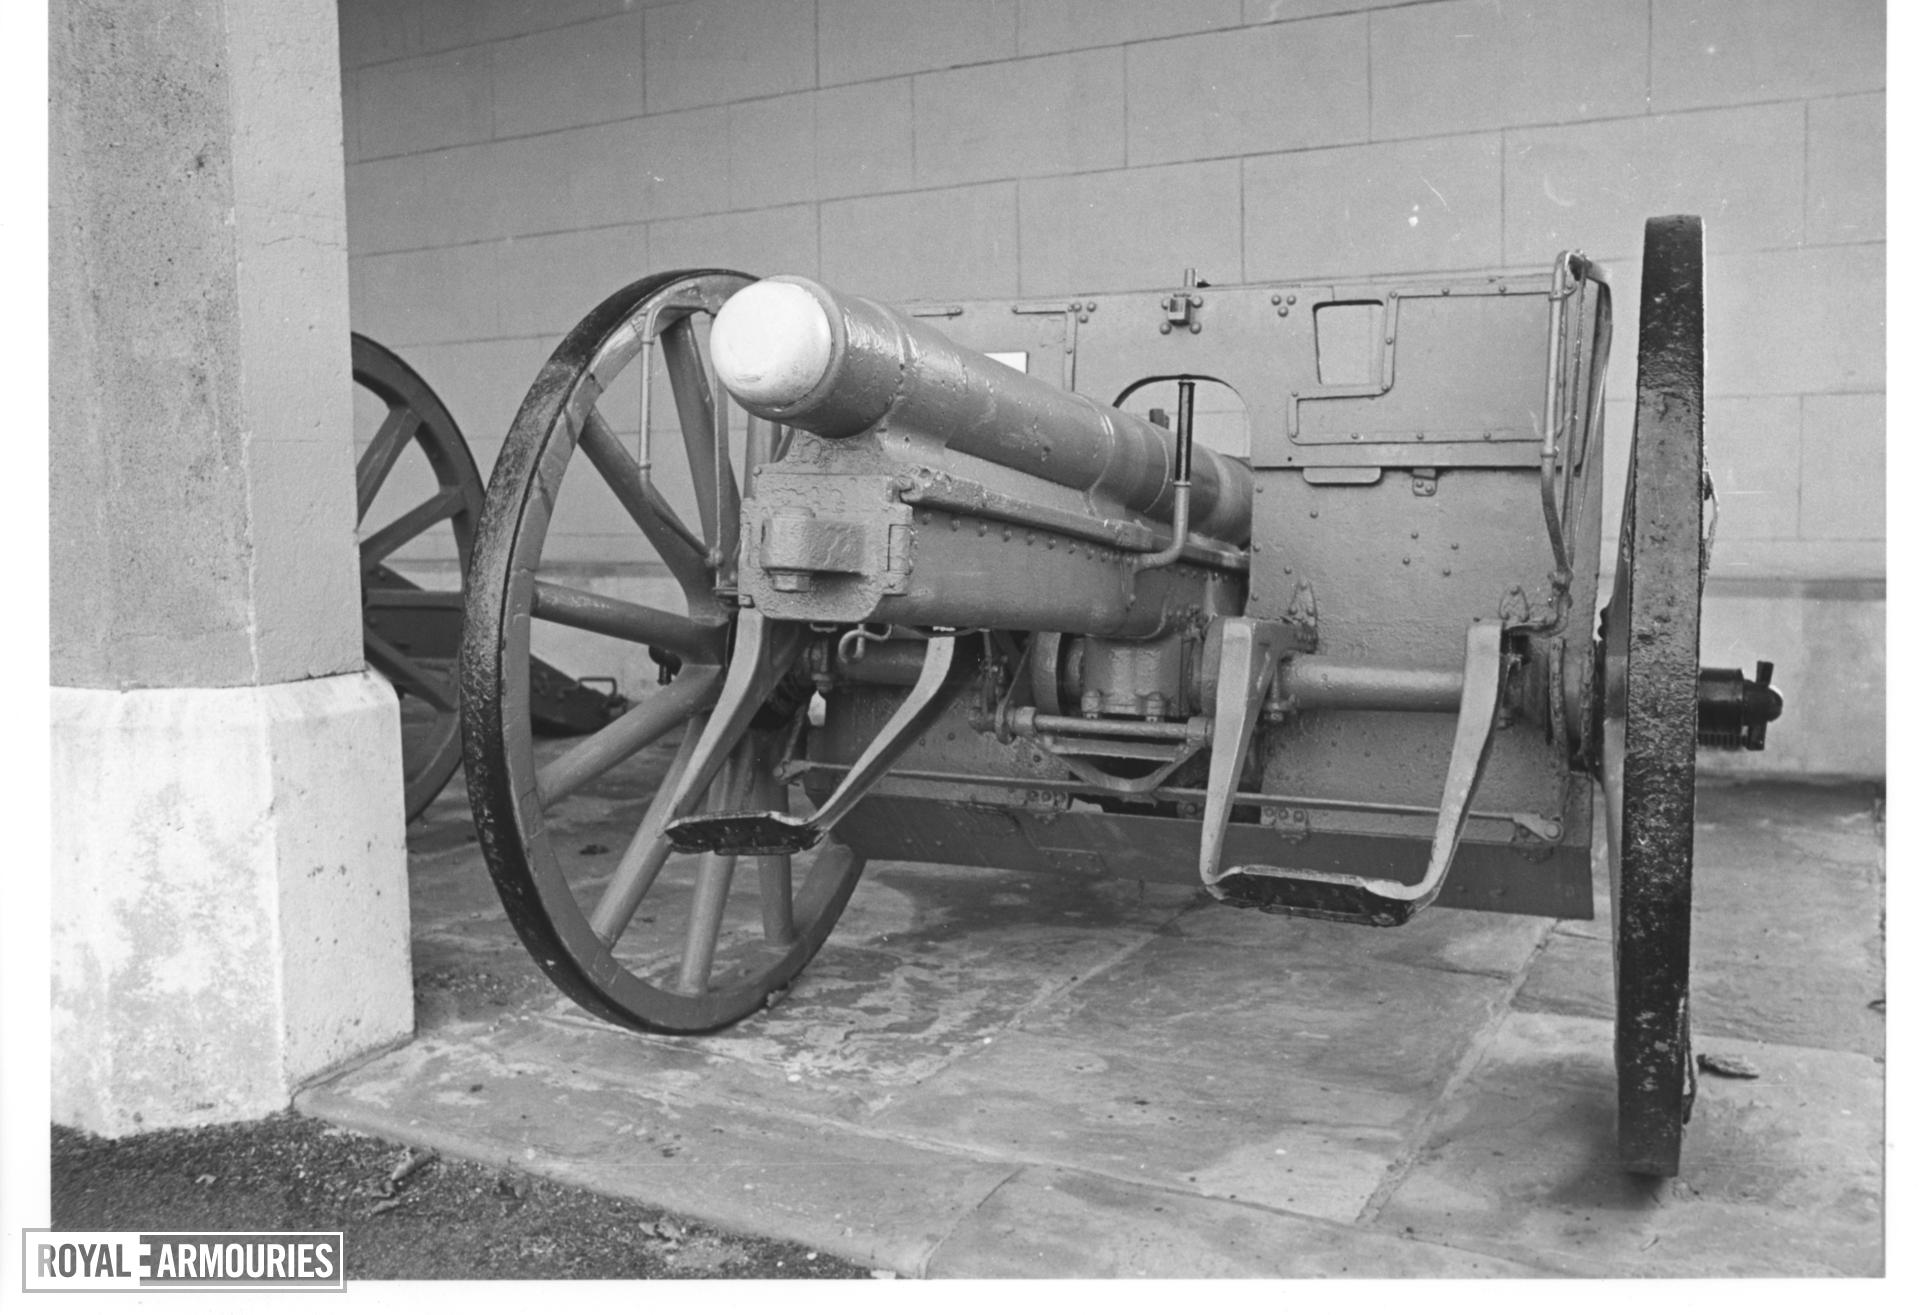 77mm RBL field gun and carriage (Model 1896). German, 1915